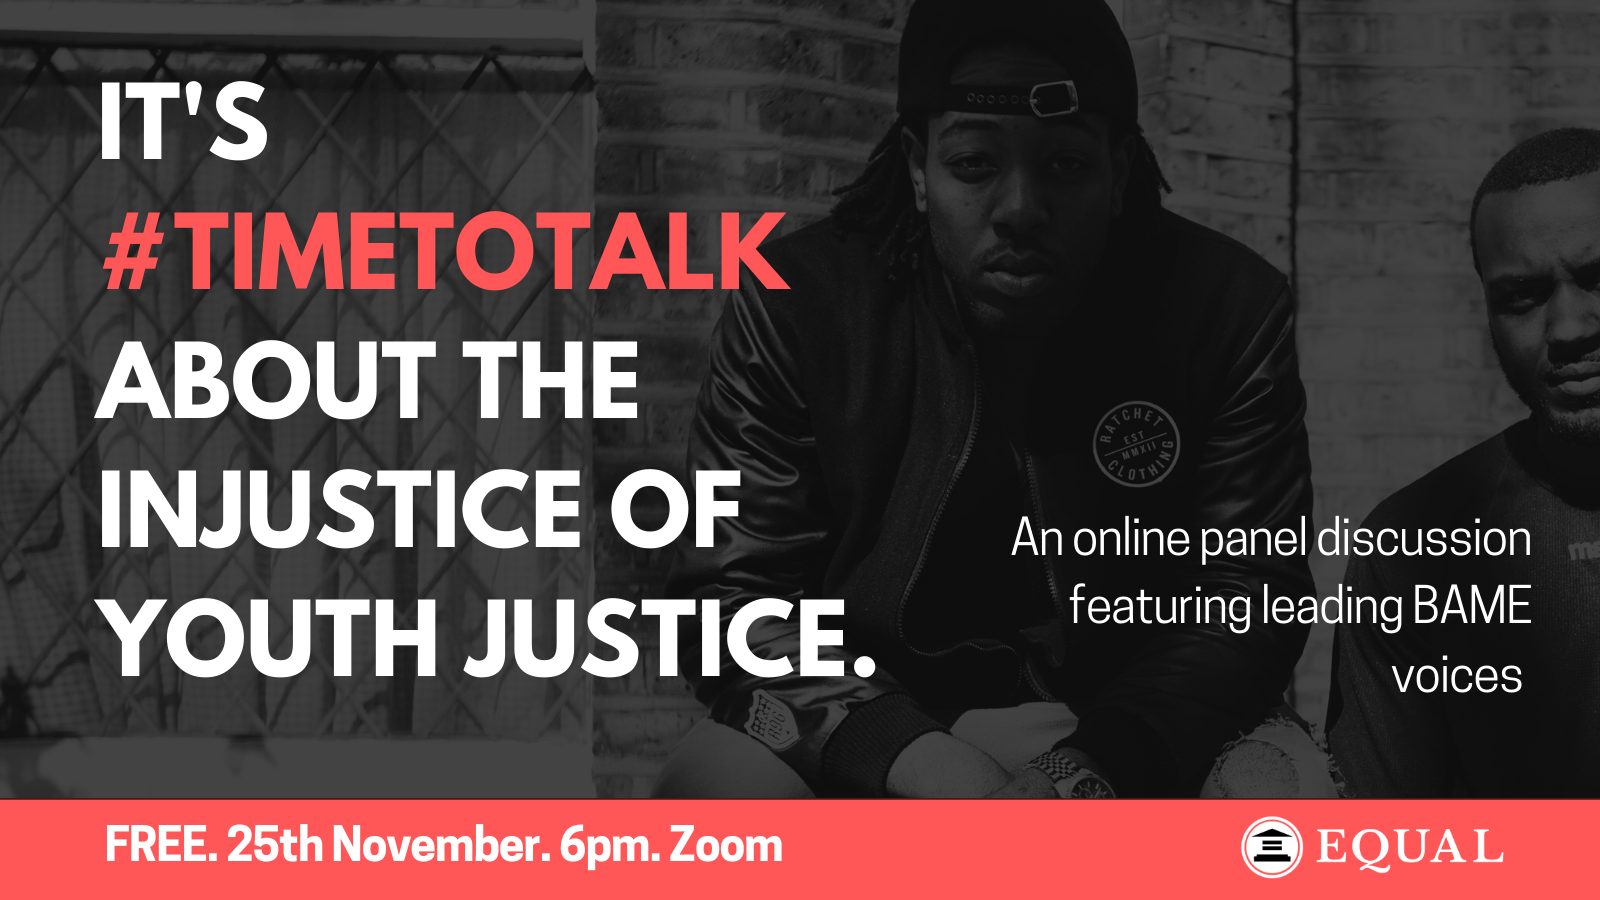 Details of The Time To Talk event hosted  by EQUAL